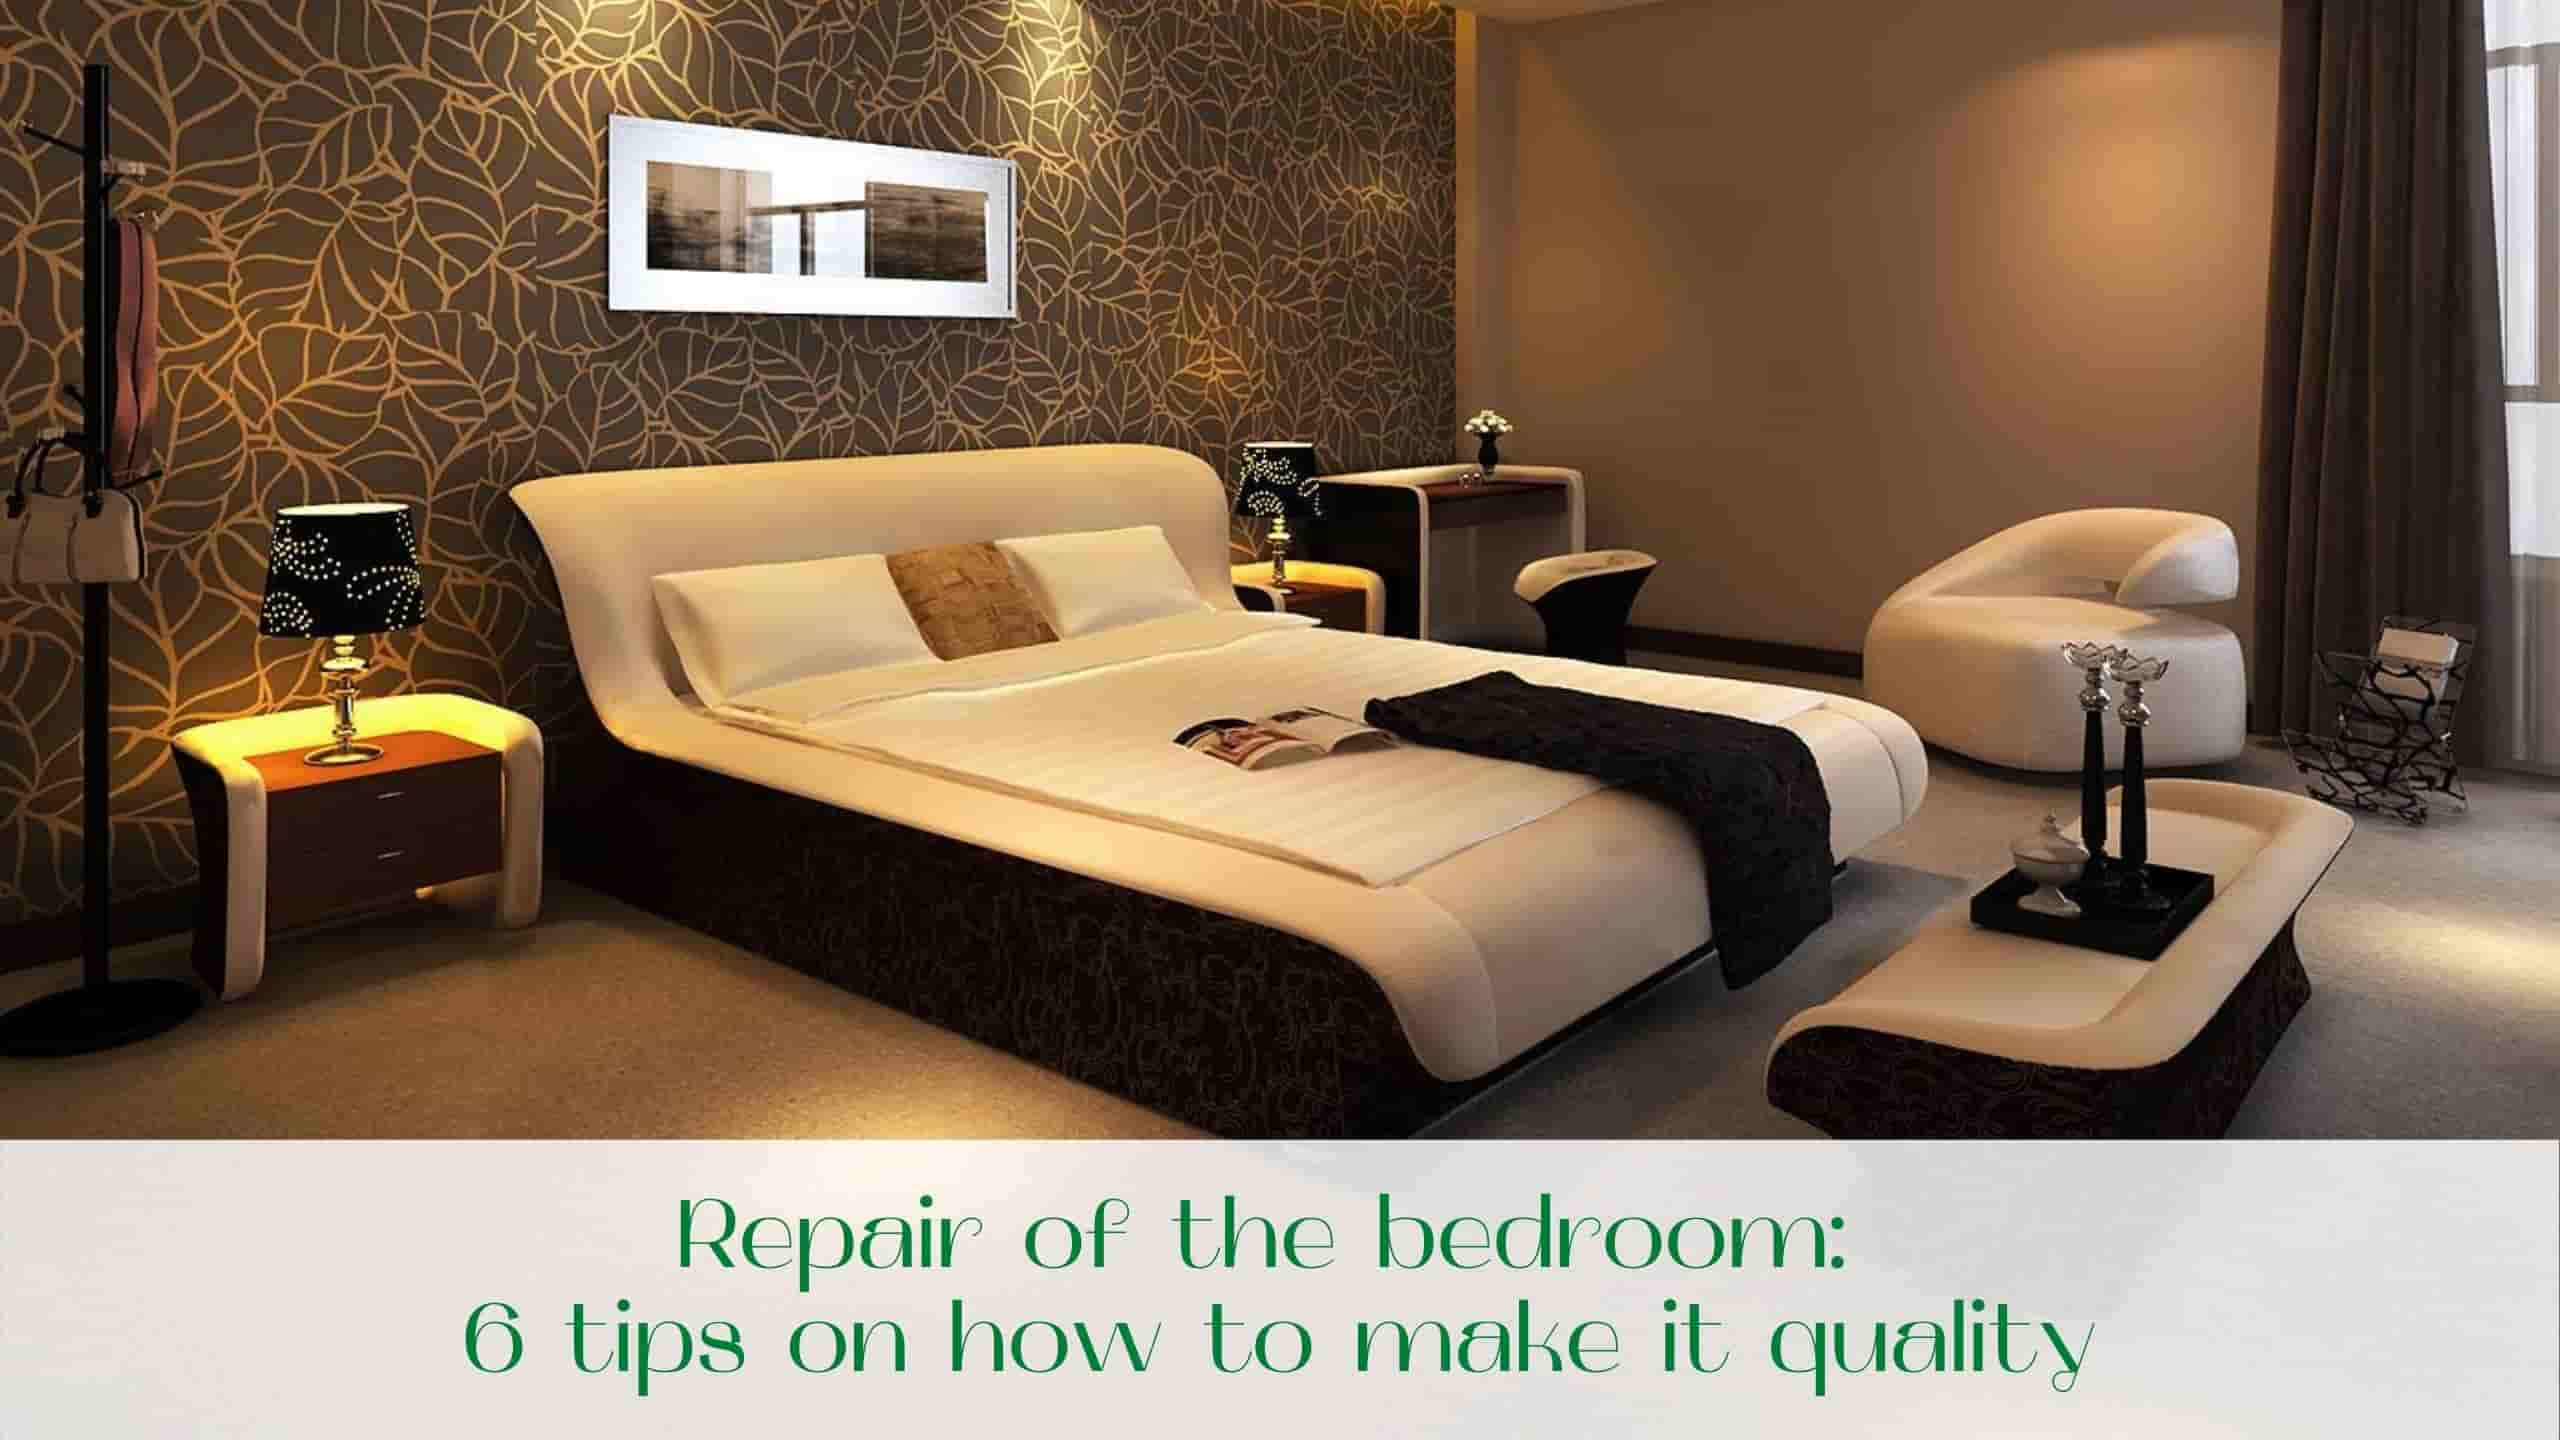 image-Repair-of-the-bedroom-6-tips-on-how-to-make-it-quality